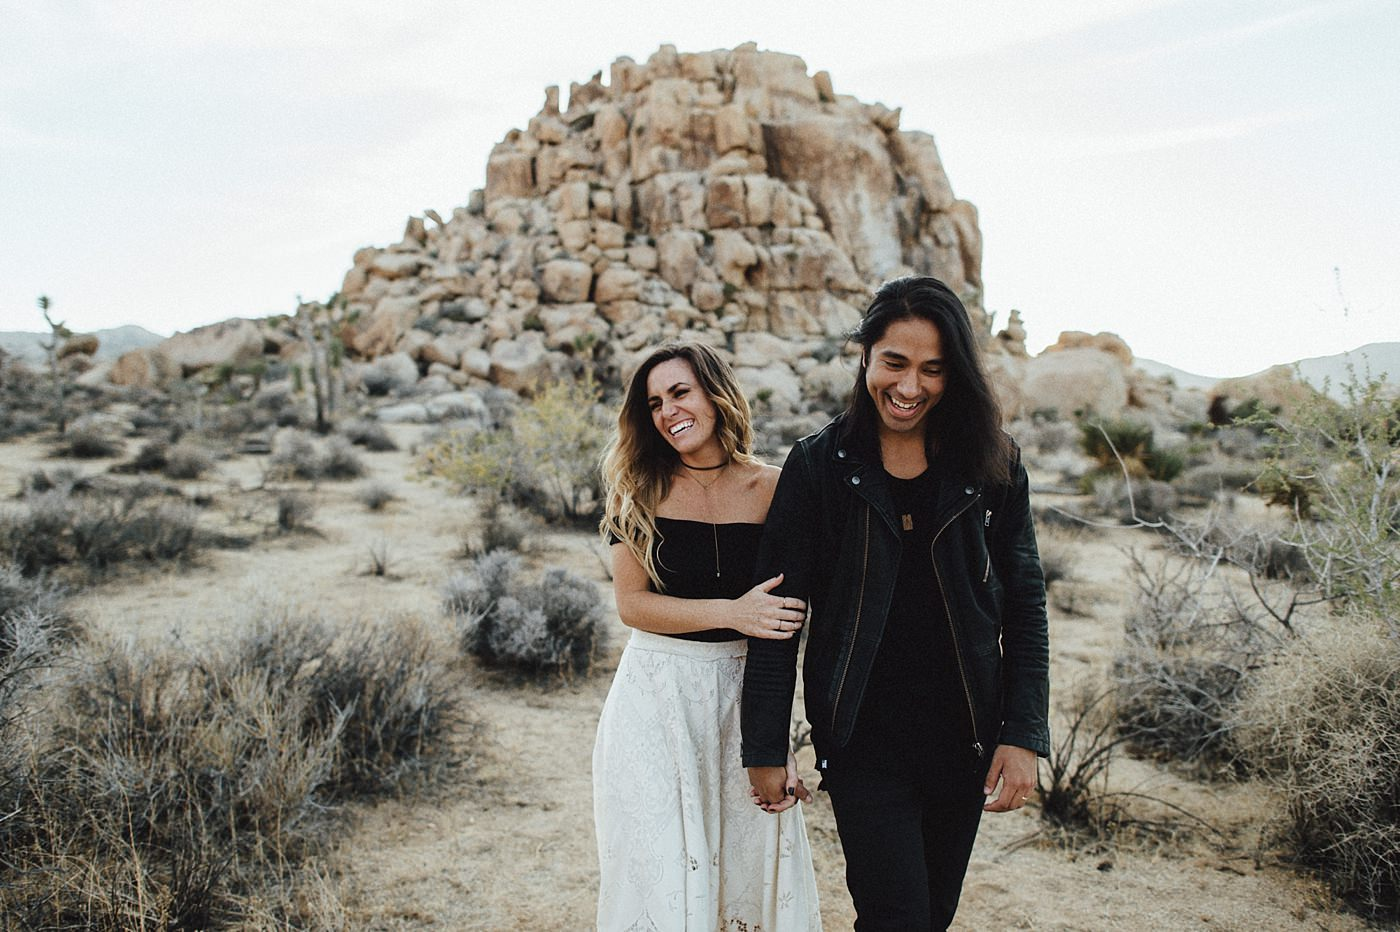 international-elopement-photographer_0176 Kinsey & Josh & Banjo Photographer in Joshuatreeinternational elopement photographer 0176